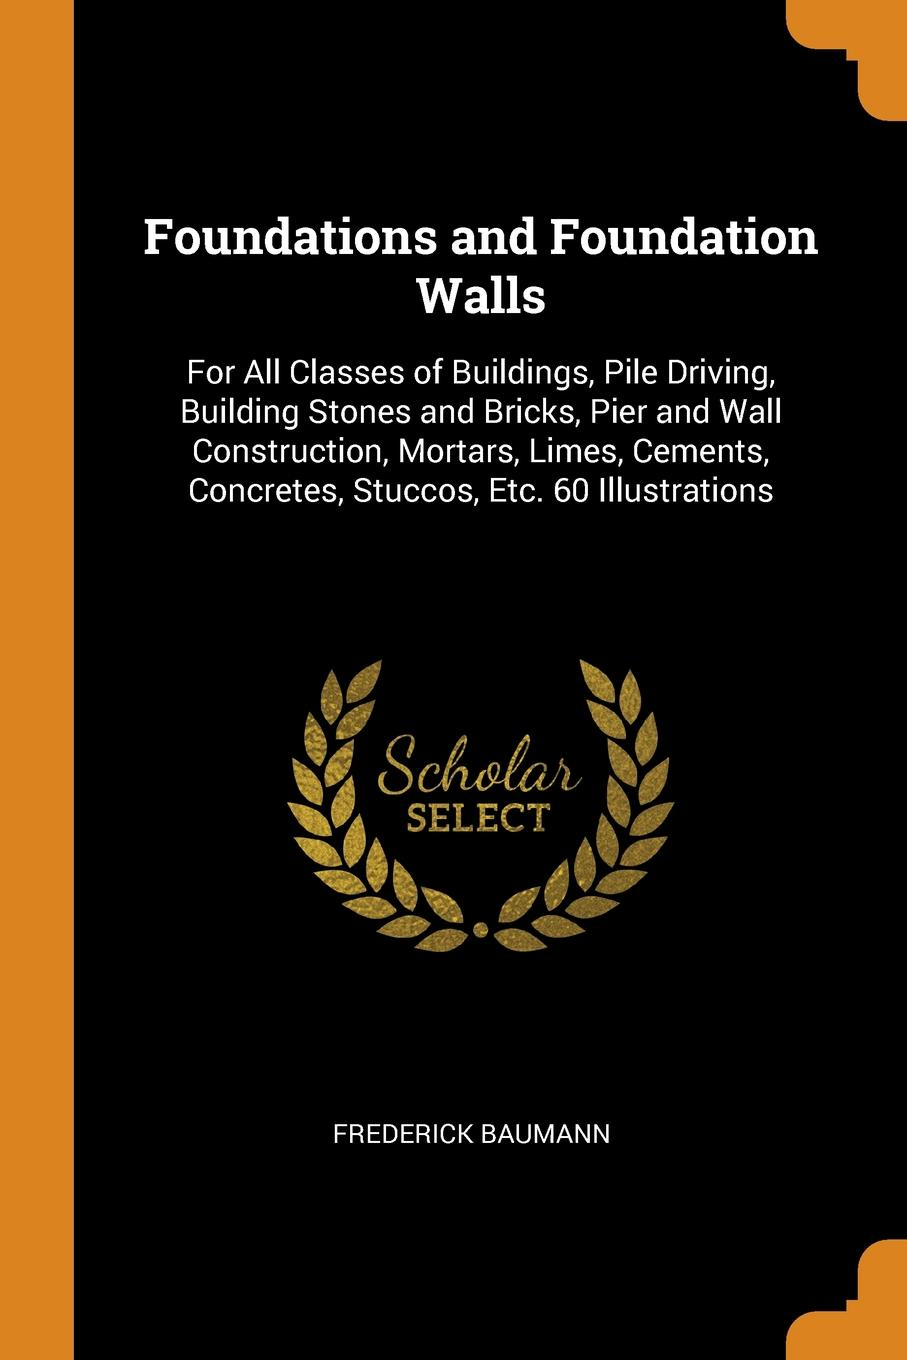 Frederick Baumann. Foundations and Foundation Walls. For All Classes of Buildings, Pile Driving, Building Stones and Bricks, Pier and Wall Construction, Mortars, Limes, Cements, Concretes, Stuccos, Etc. 60 Illustrations